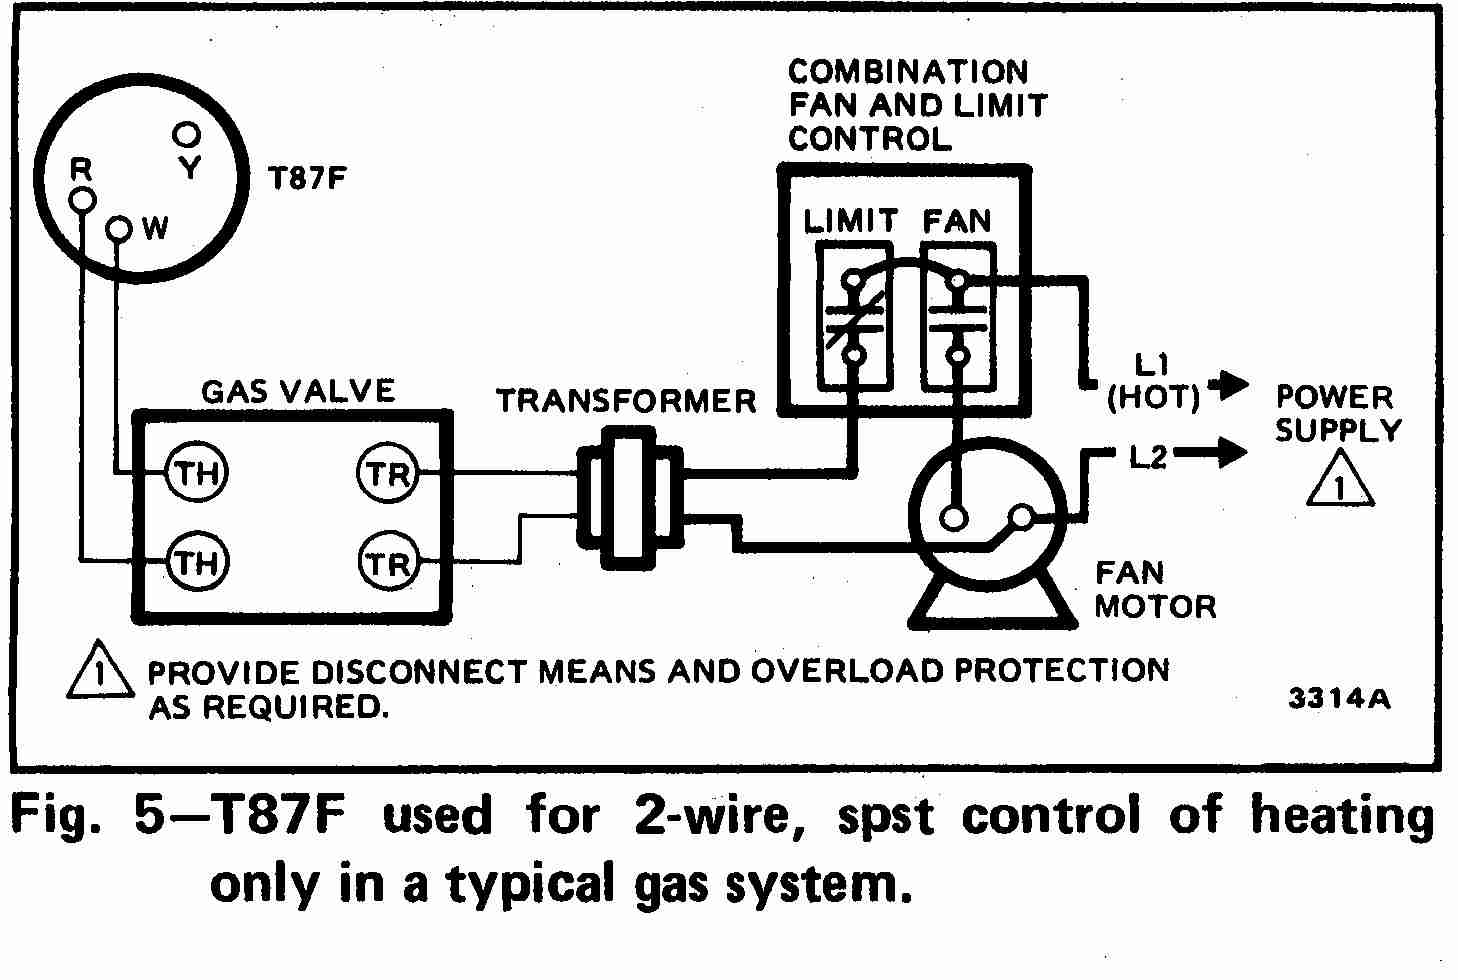 TT_T87F_0002_2Wg_DJF room thermostat wiring diagrams for hvac systems honeywell aquastat wiring diagram at mifinder.co